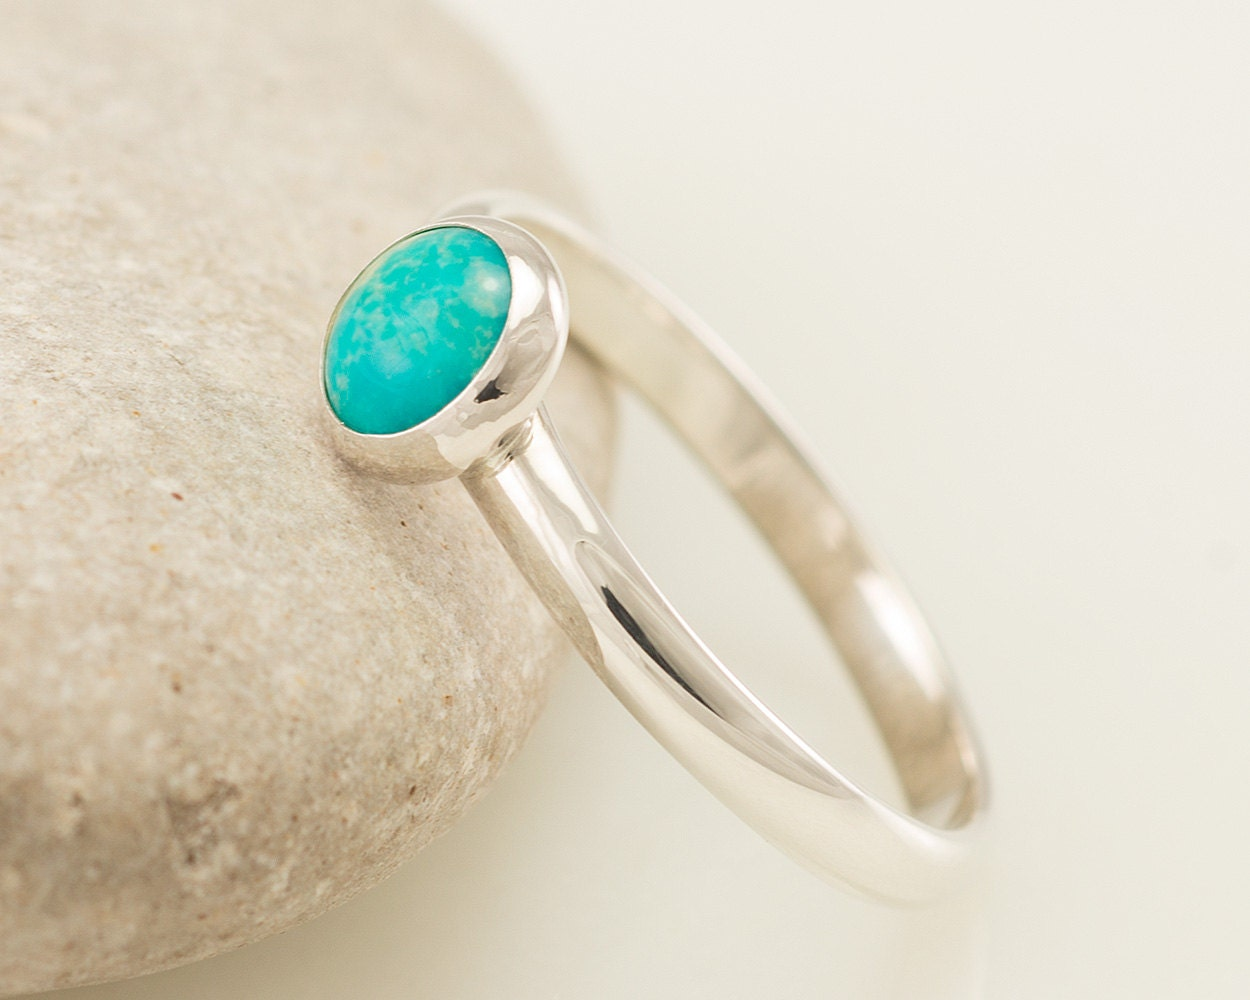 accessories turquoise on lot from stone rings retro silver wholesale in women tibet for plated item mix vintage men jewelry